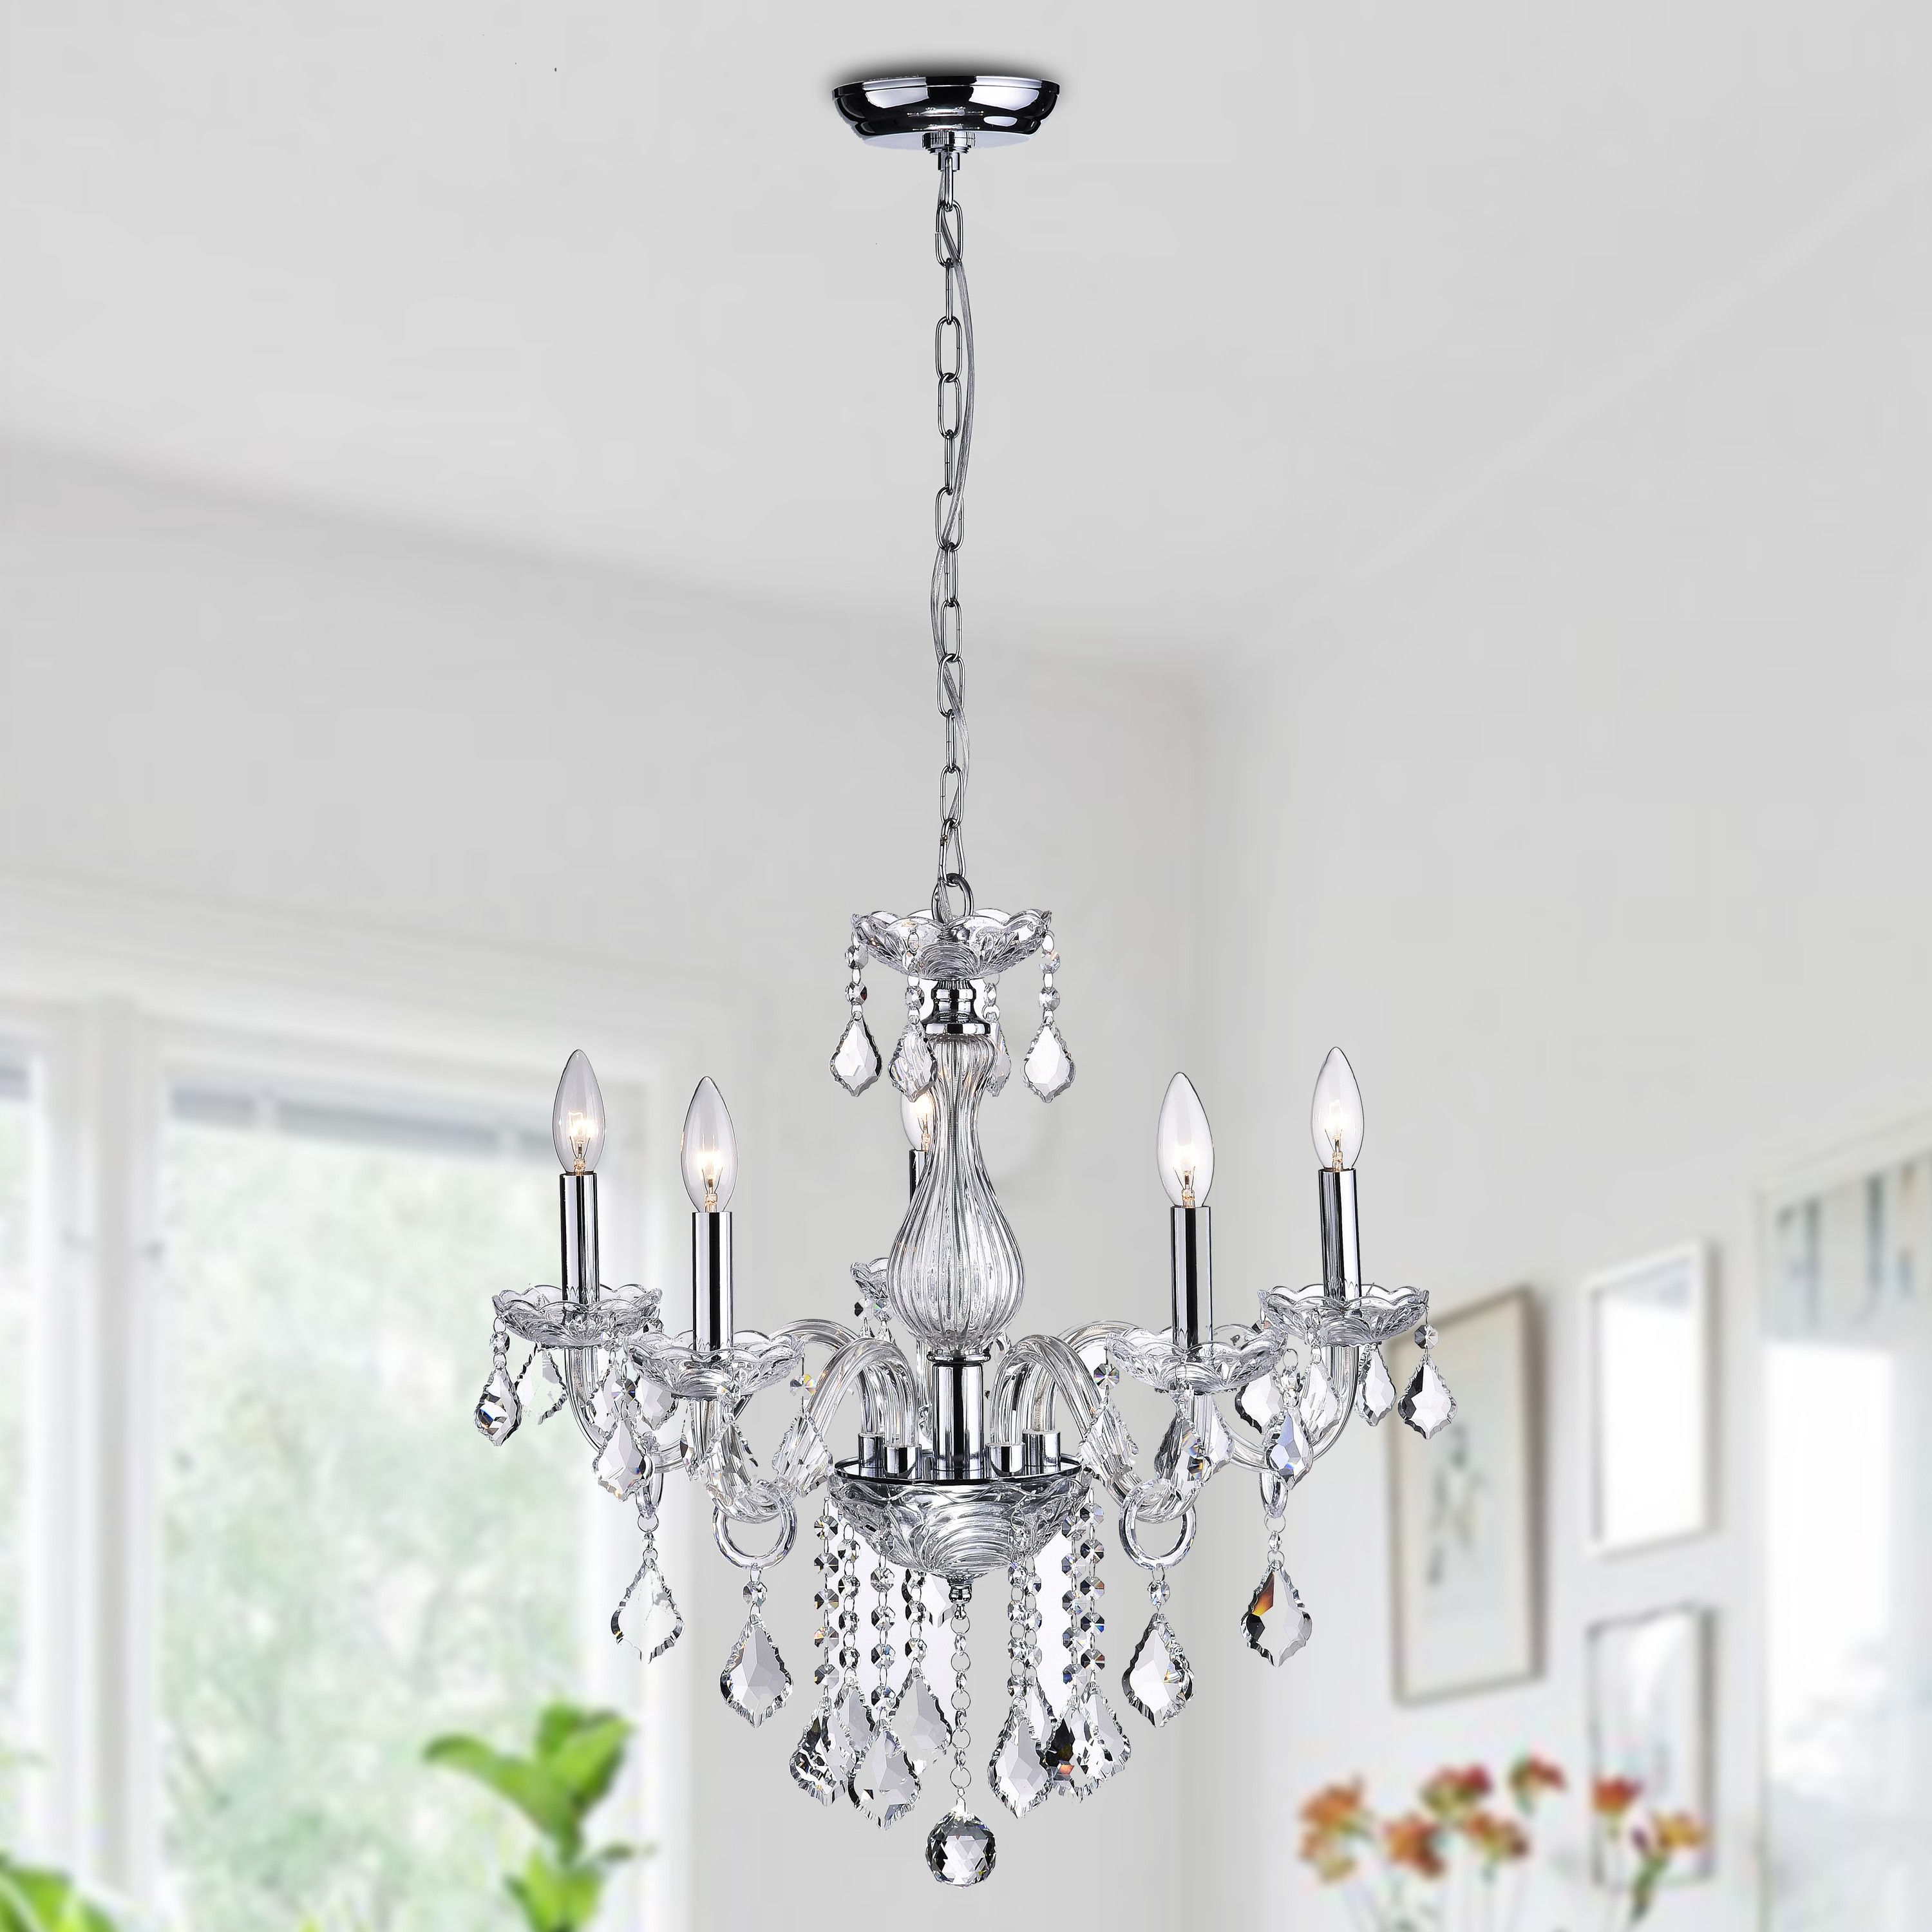 For The Home Inside 2020 Hesse 5 Light Candle Style Chandeliers (View 11 of 25)